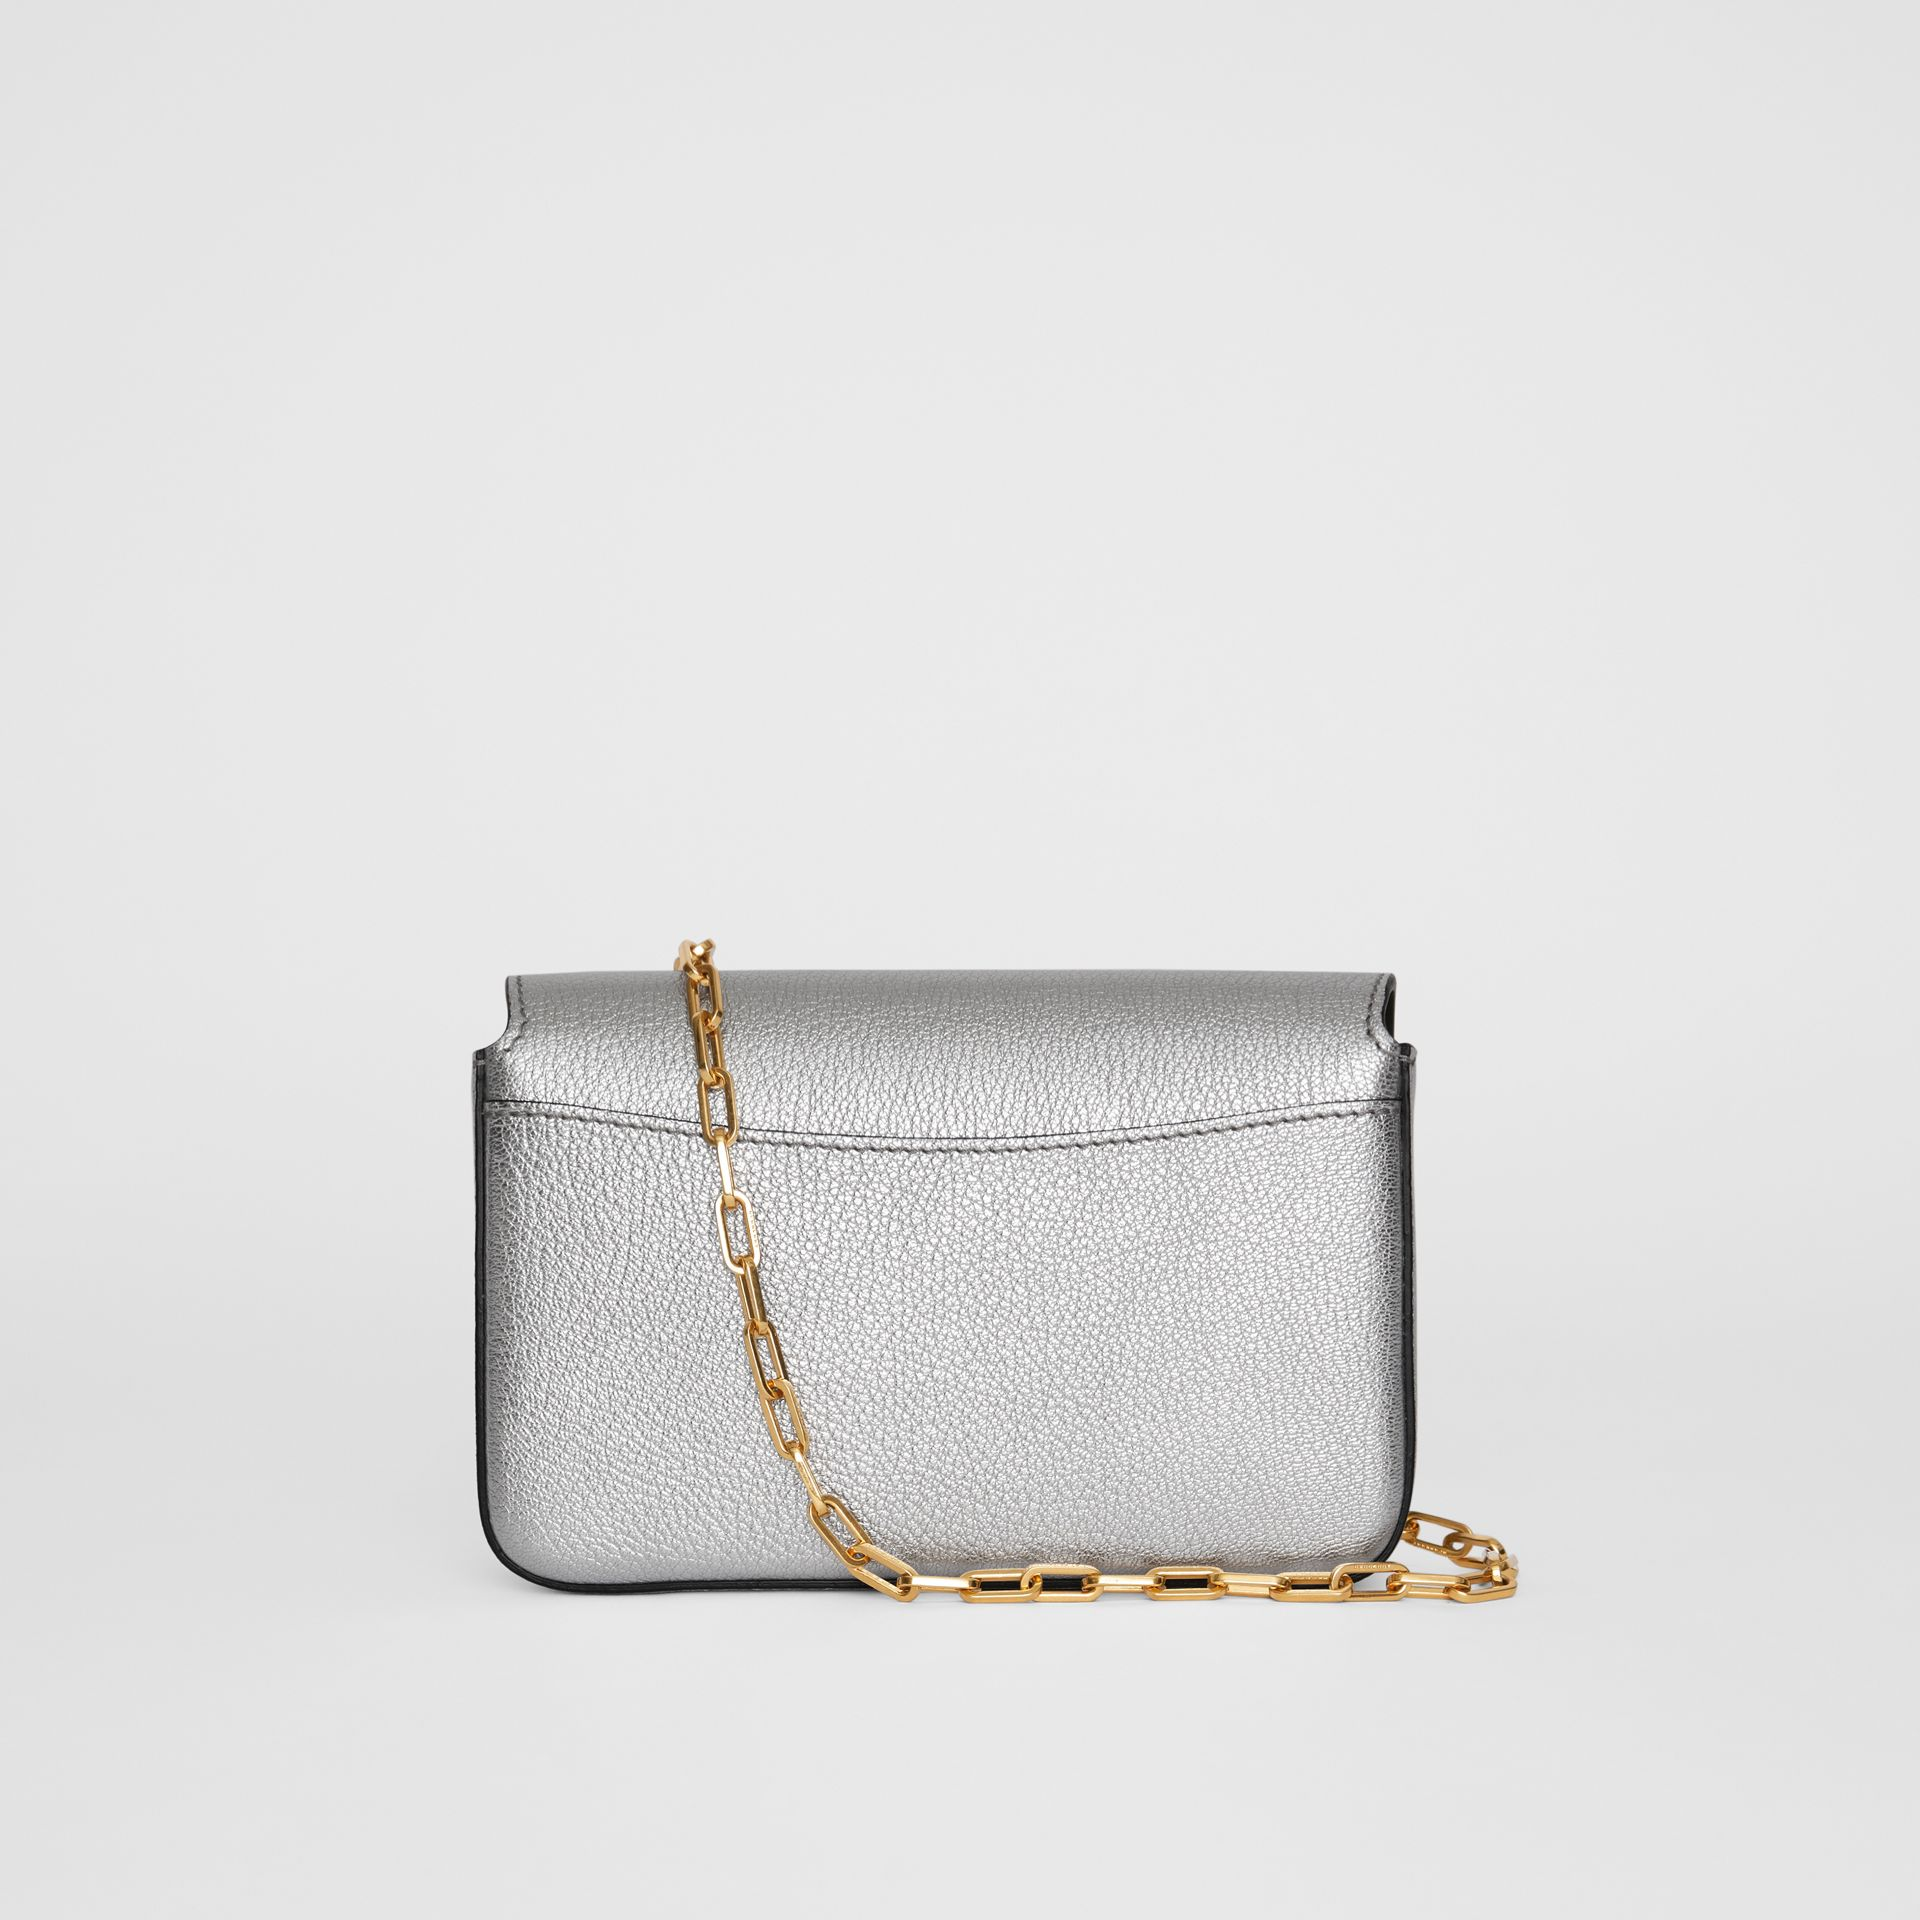 Mini sac The D-ring en cuir (Argent) - Femme | Burberry Canada - photo de la galerie 7